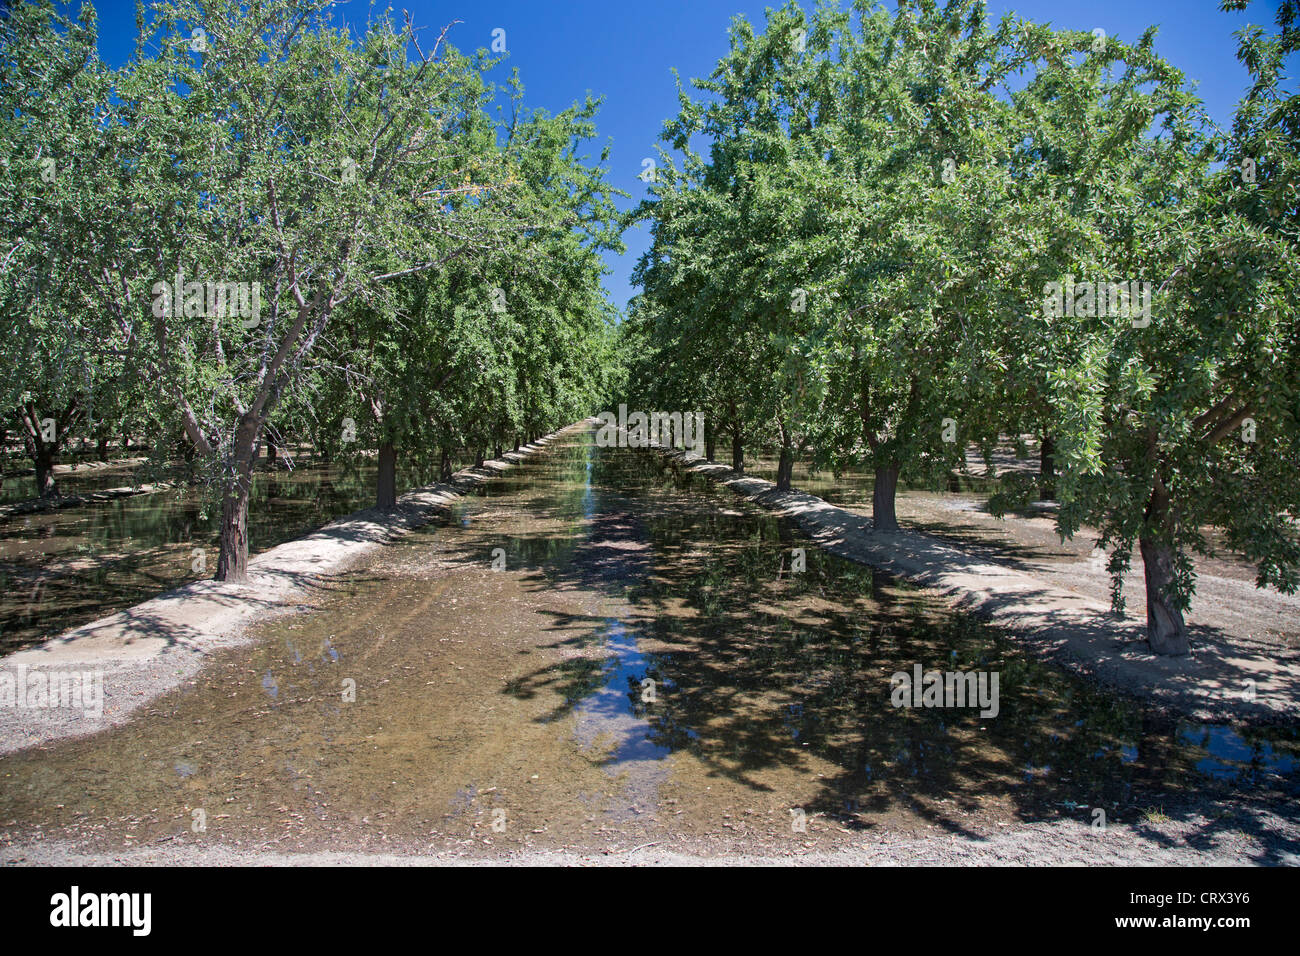 Buttonwillow, California - An orchard of nut trees in the San Joaquin Valley is flooded to irrigate the trees. - Stock Image